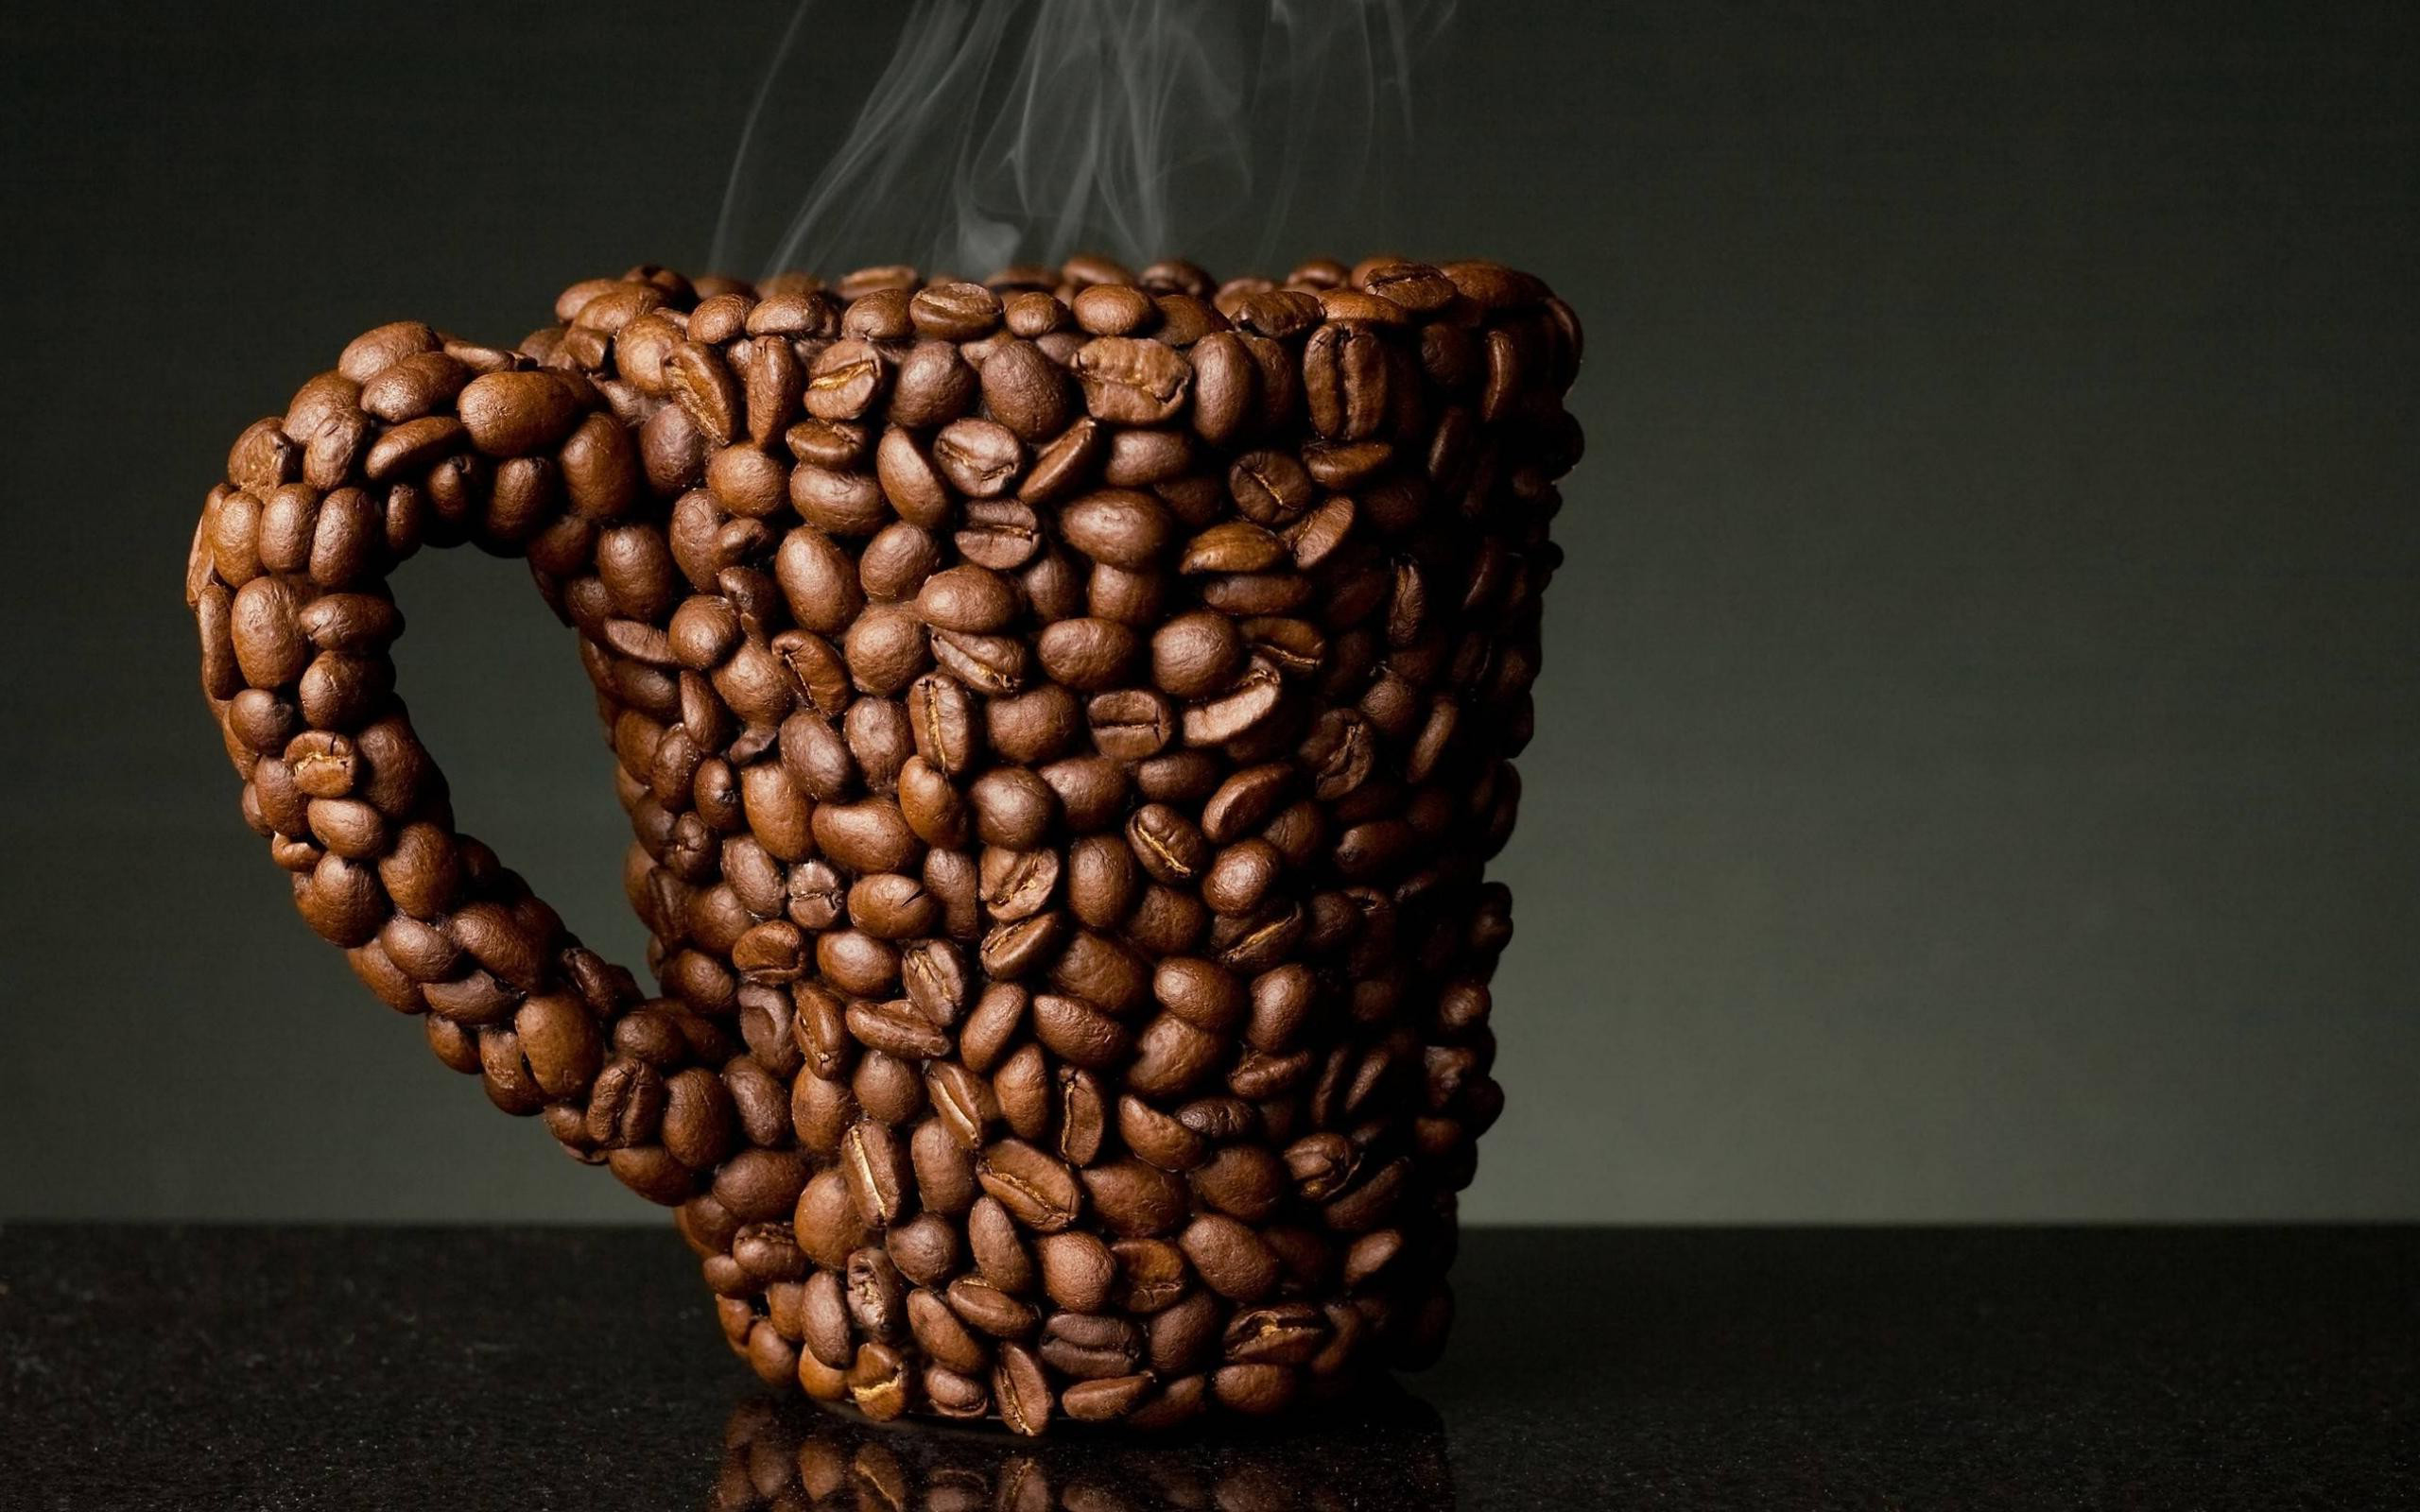 Coffee Full HD Wallpaper And Background Image